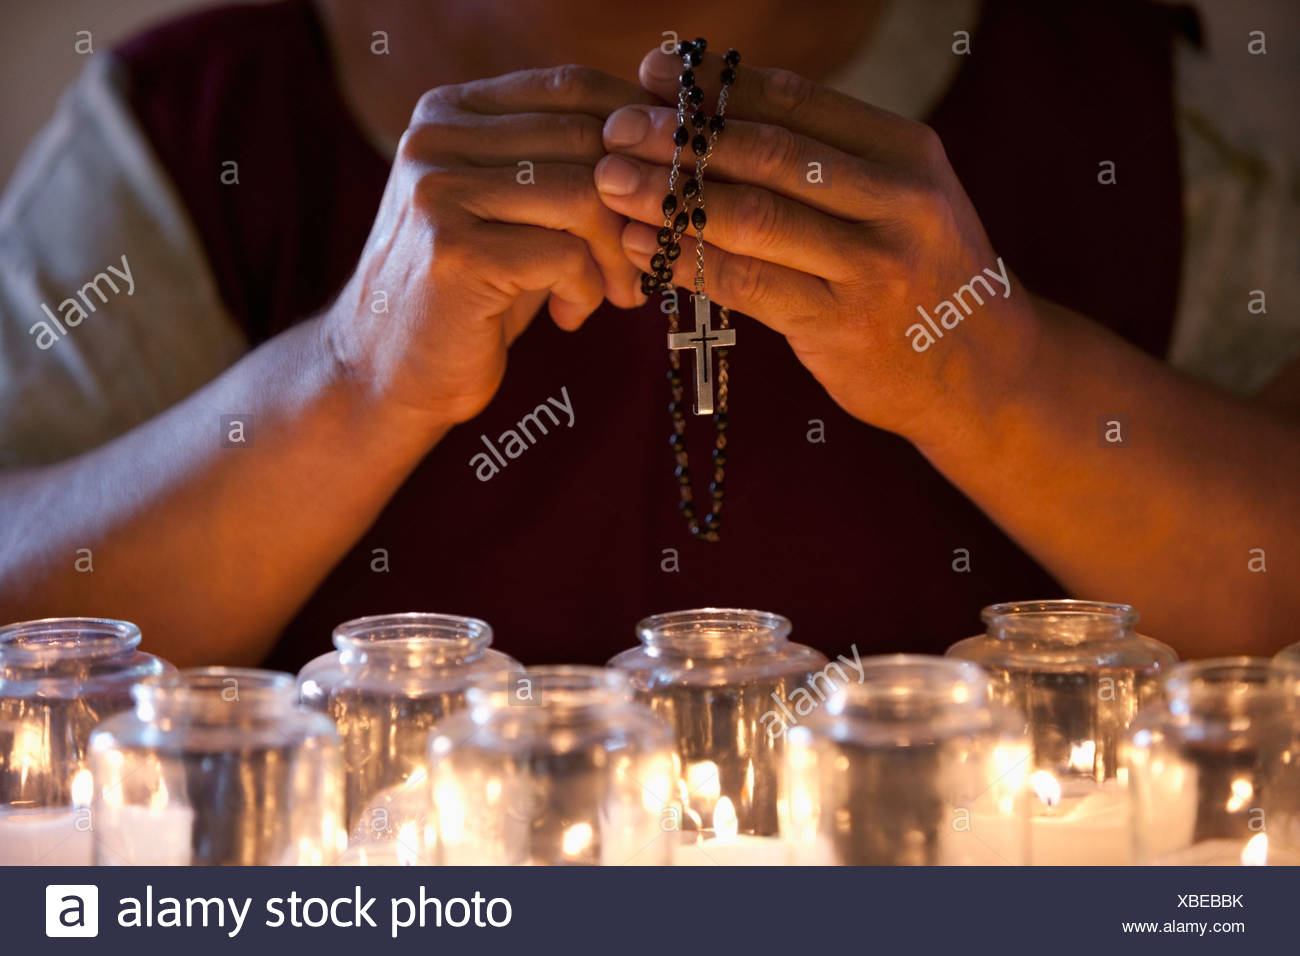 Hands holding prayer beads over candles - Stock Image